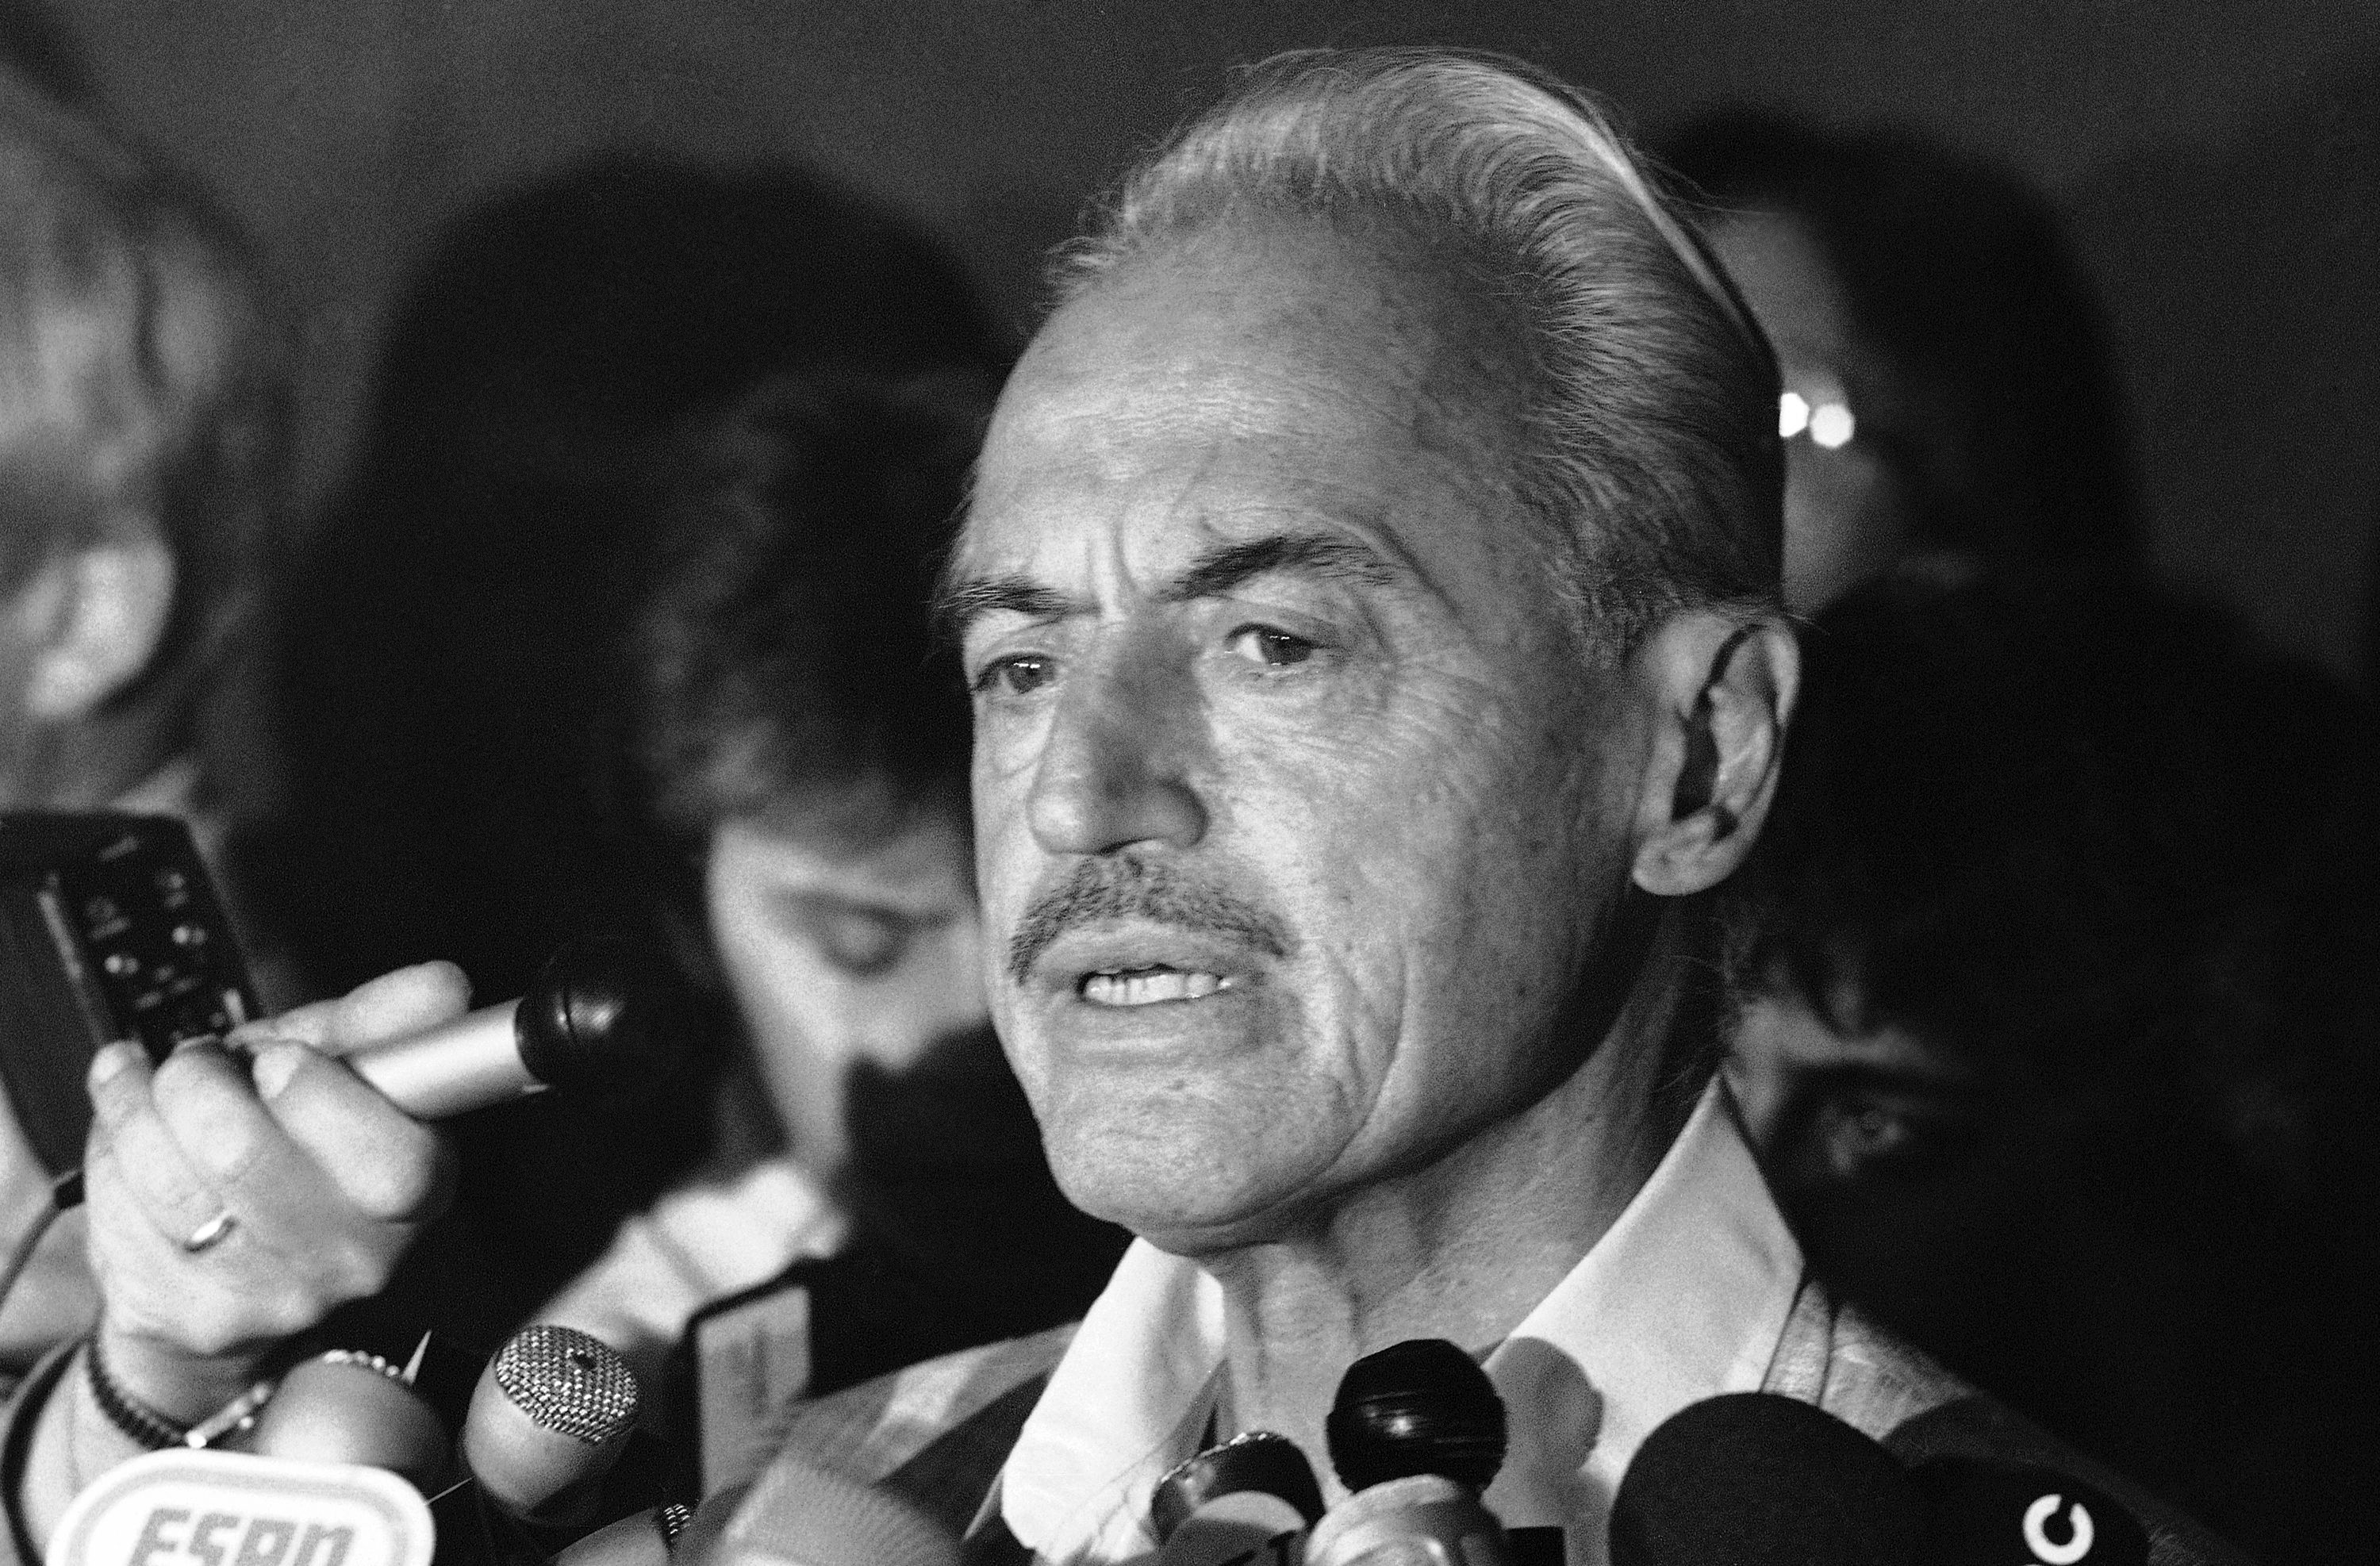 Marvin Miller, the union leader who revolutionized baseball by empowering players to negotiate multimillion-dollar contracts and to play for teams of their own choosing, was elected to the Baseball Hall of Fame.